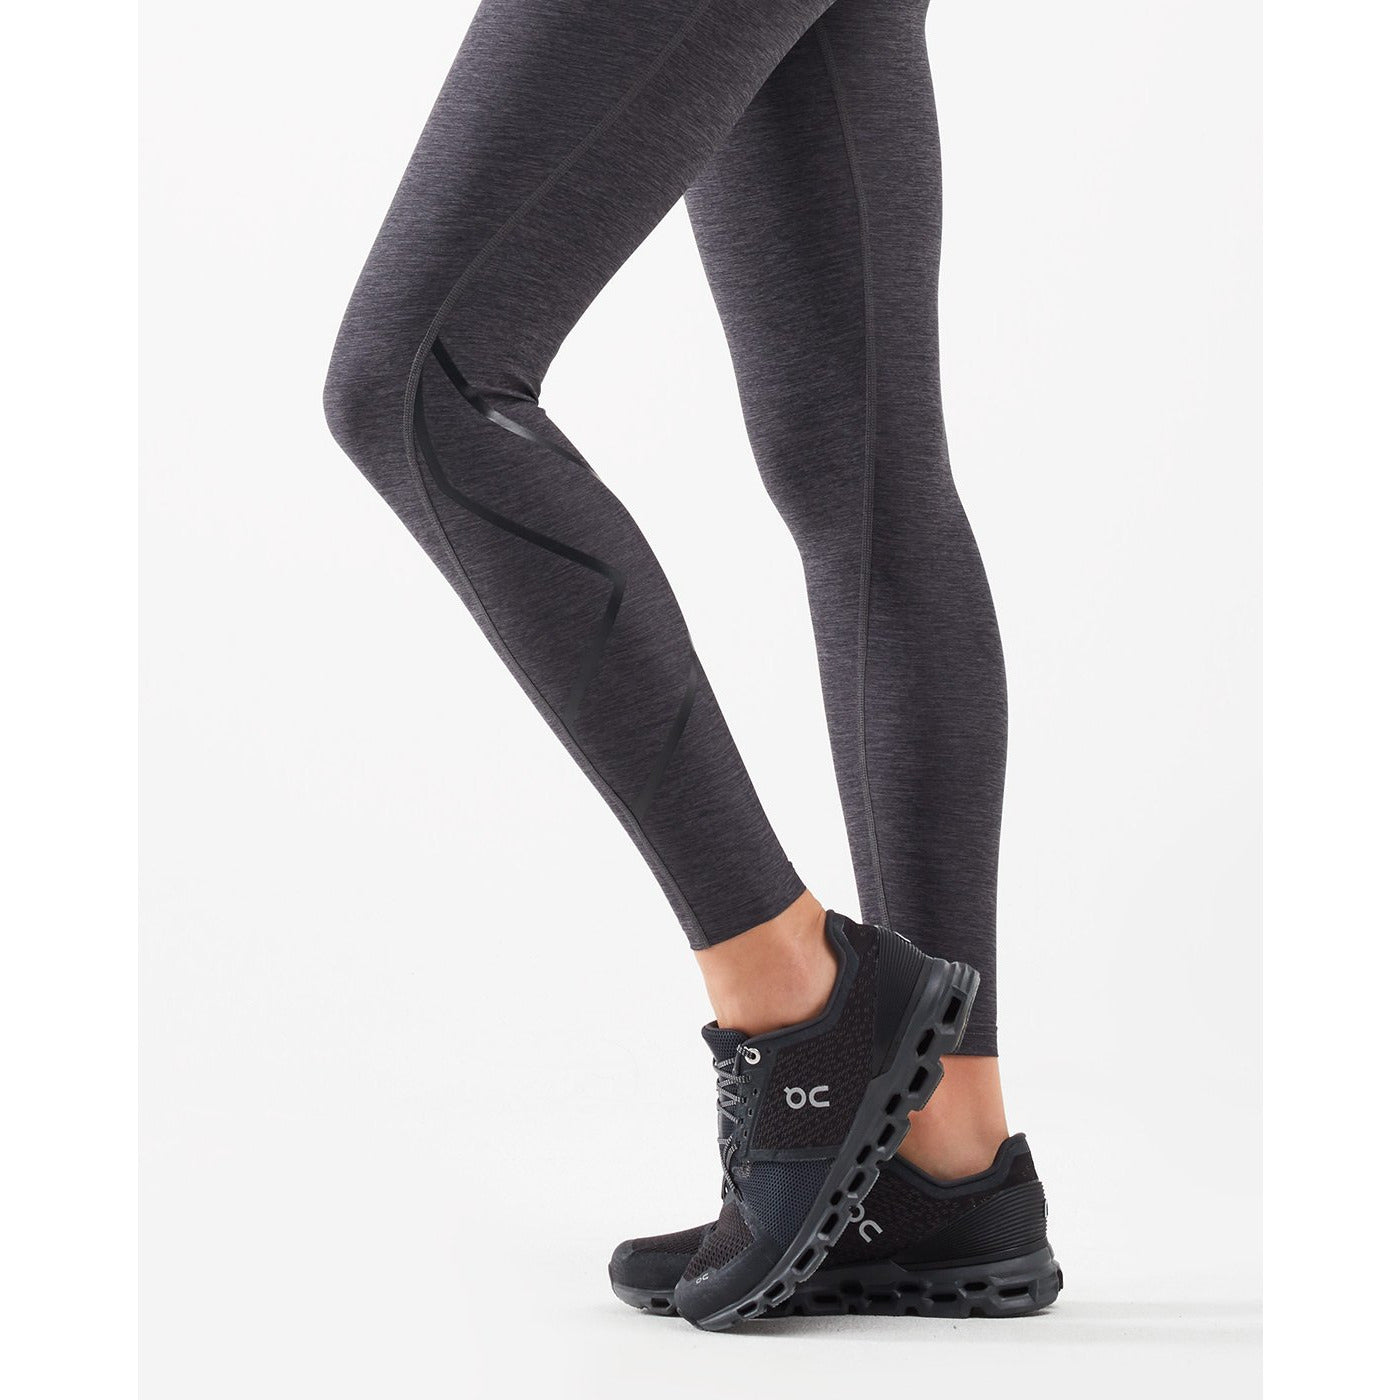 2XU Womens Print Hi-Rise Comp Tights - Sole Motive